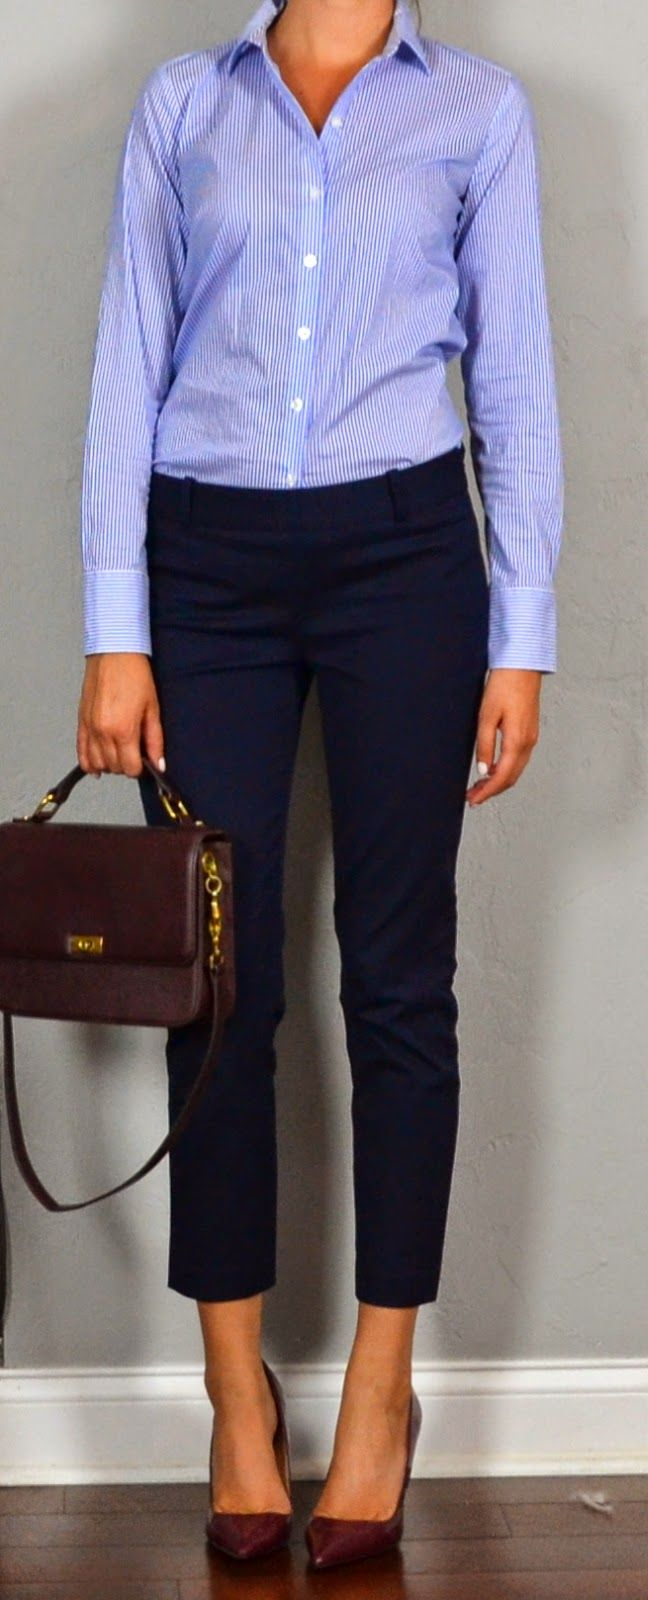 Pink n blue dress pants